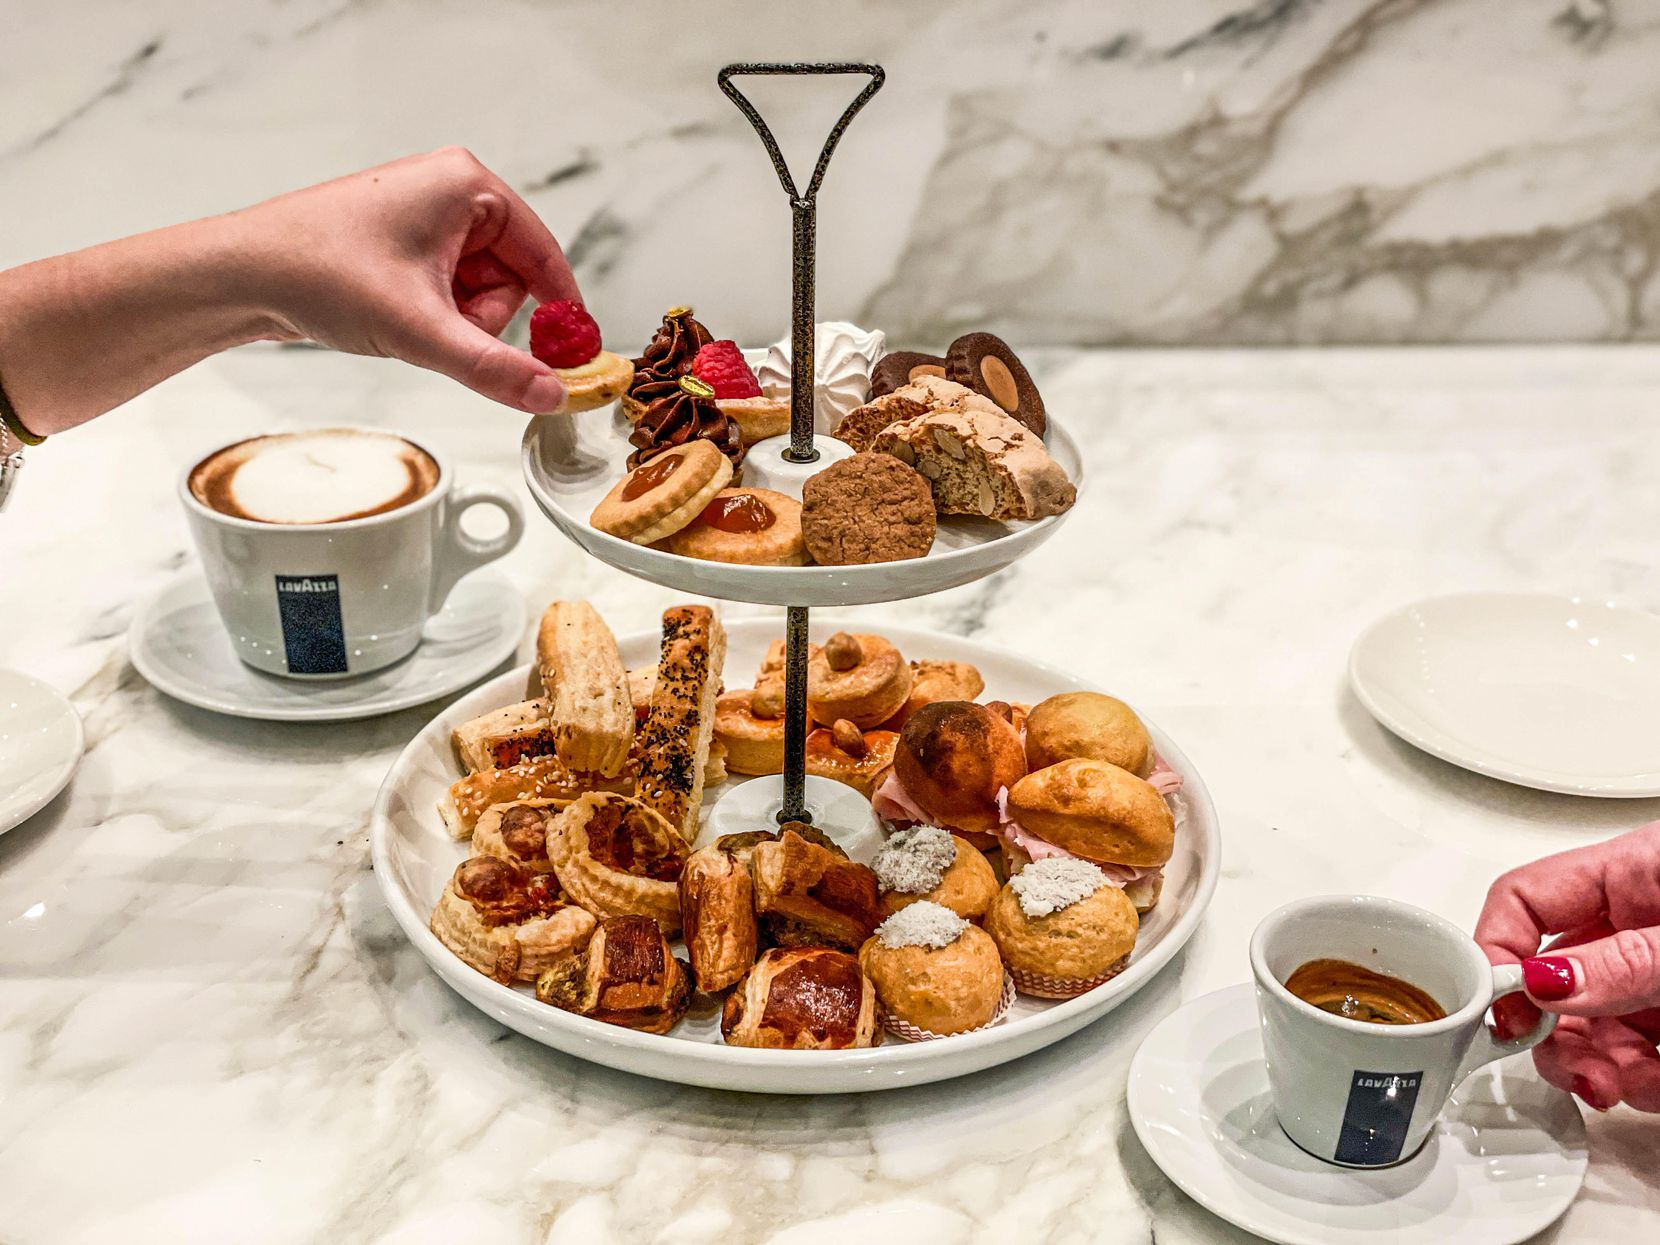 One of the menu items at Caffe Lavazza inside Eataly Dallas is la torre, a tower of shareable snacks.